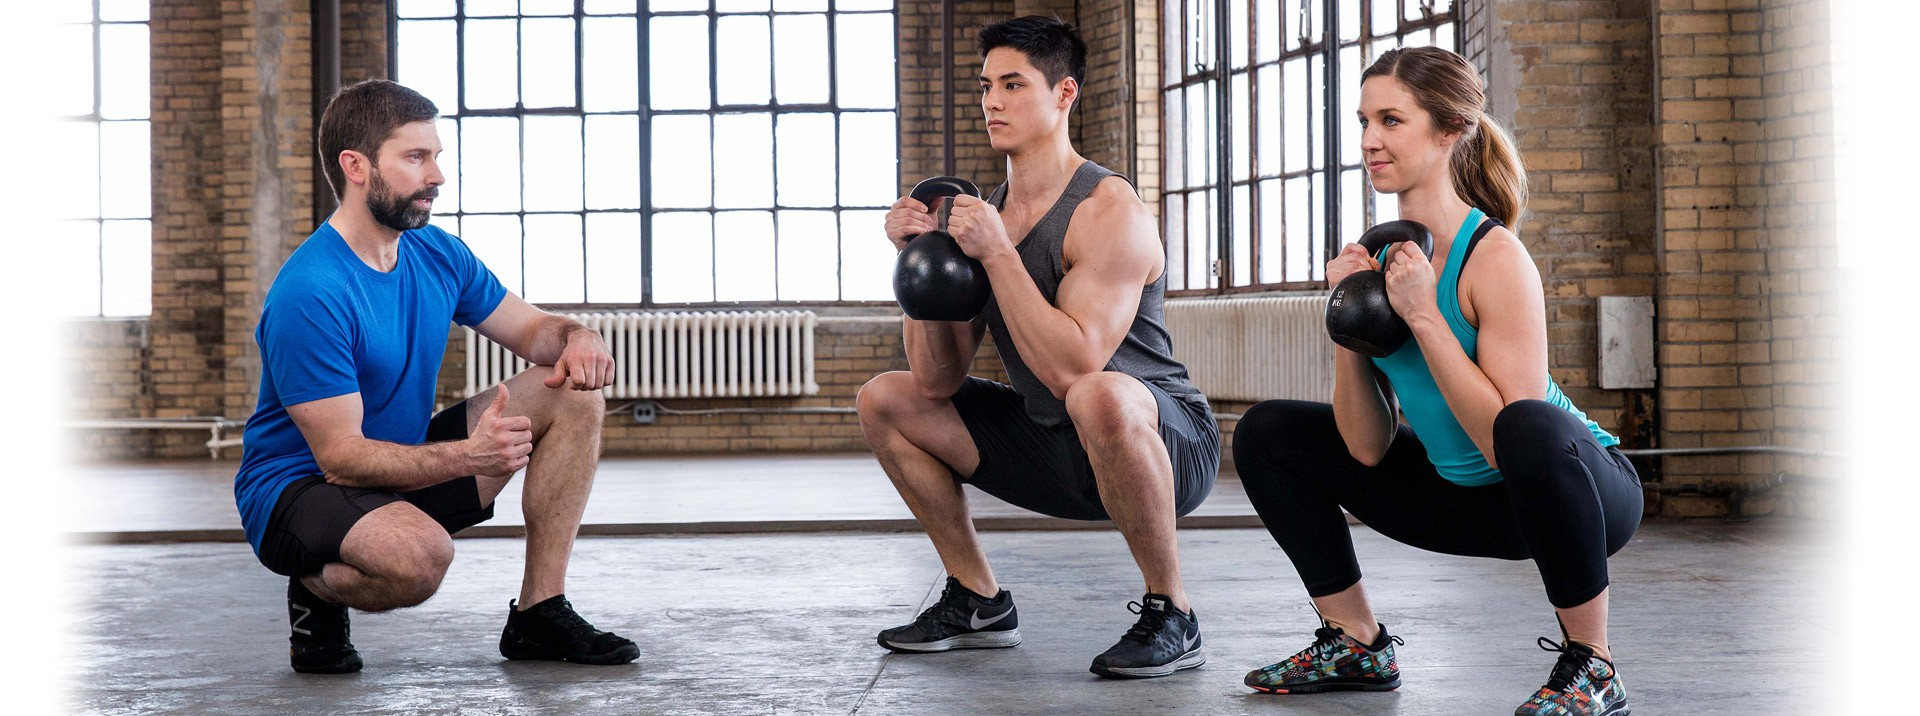 A fitness concierge goes through your work out with you to guarantee perfect form.